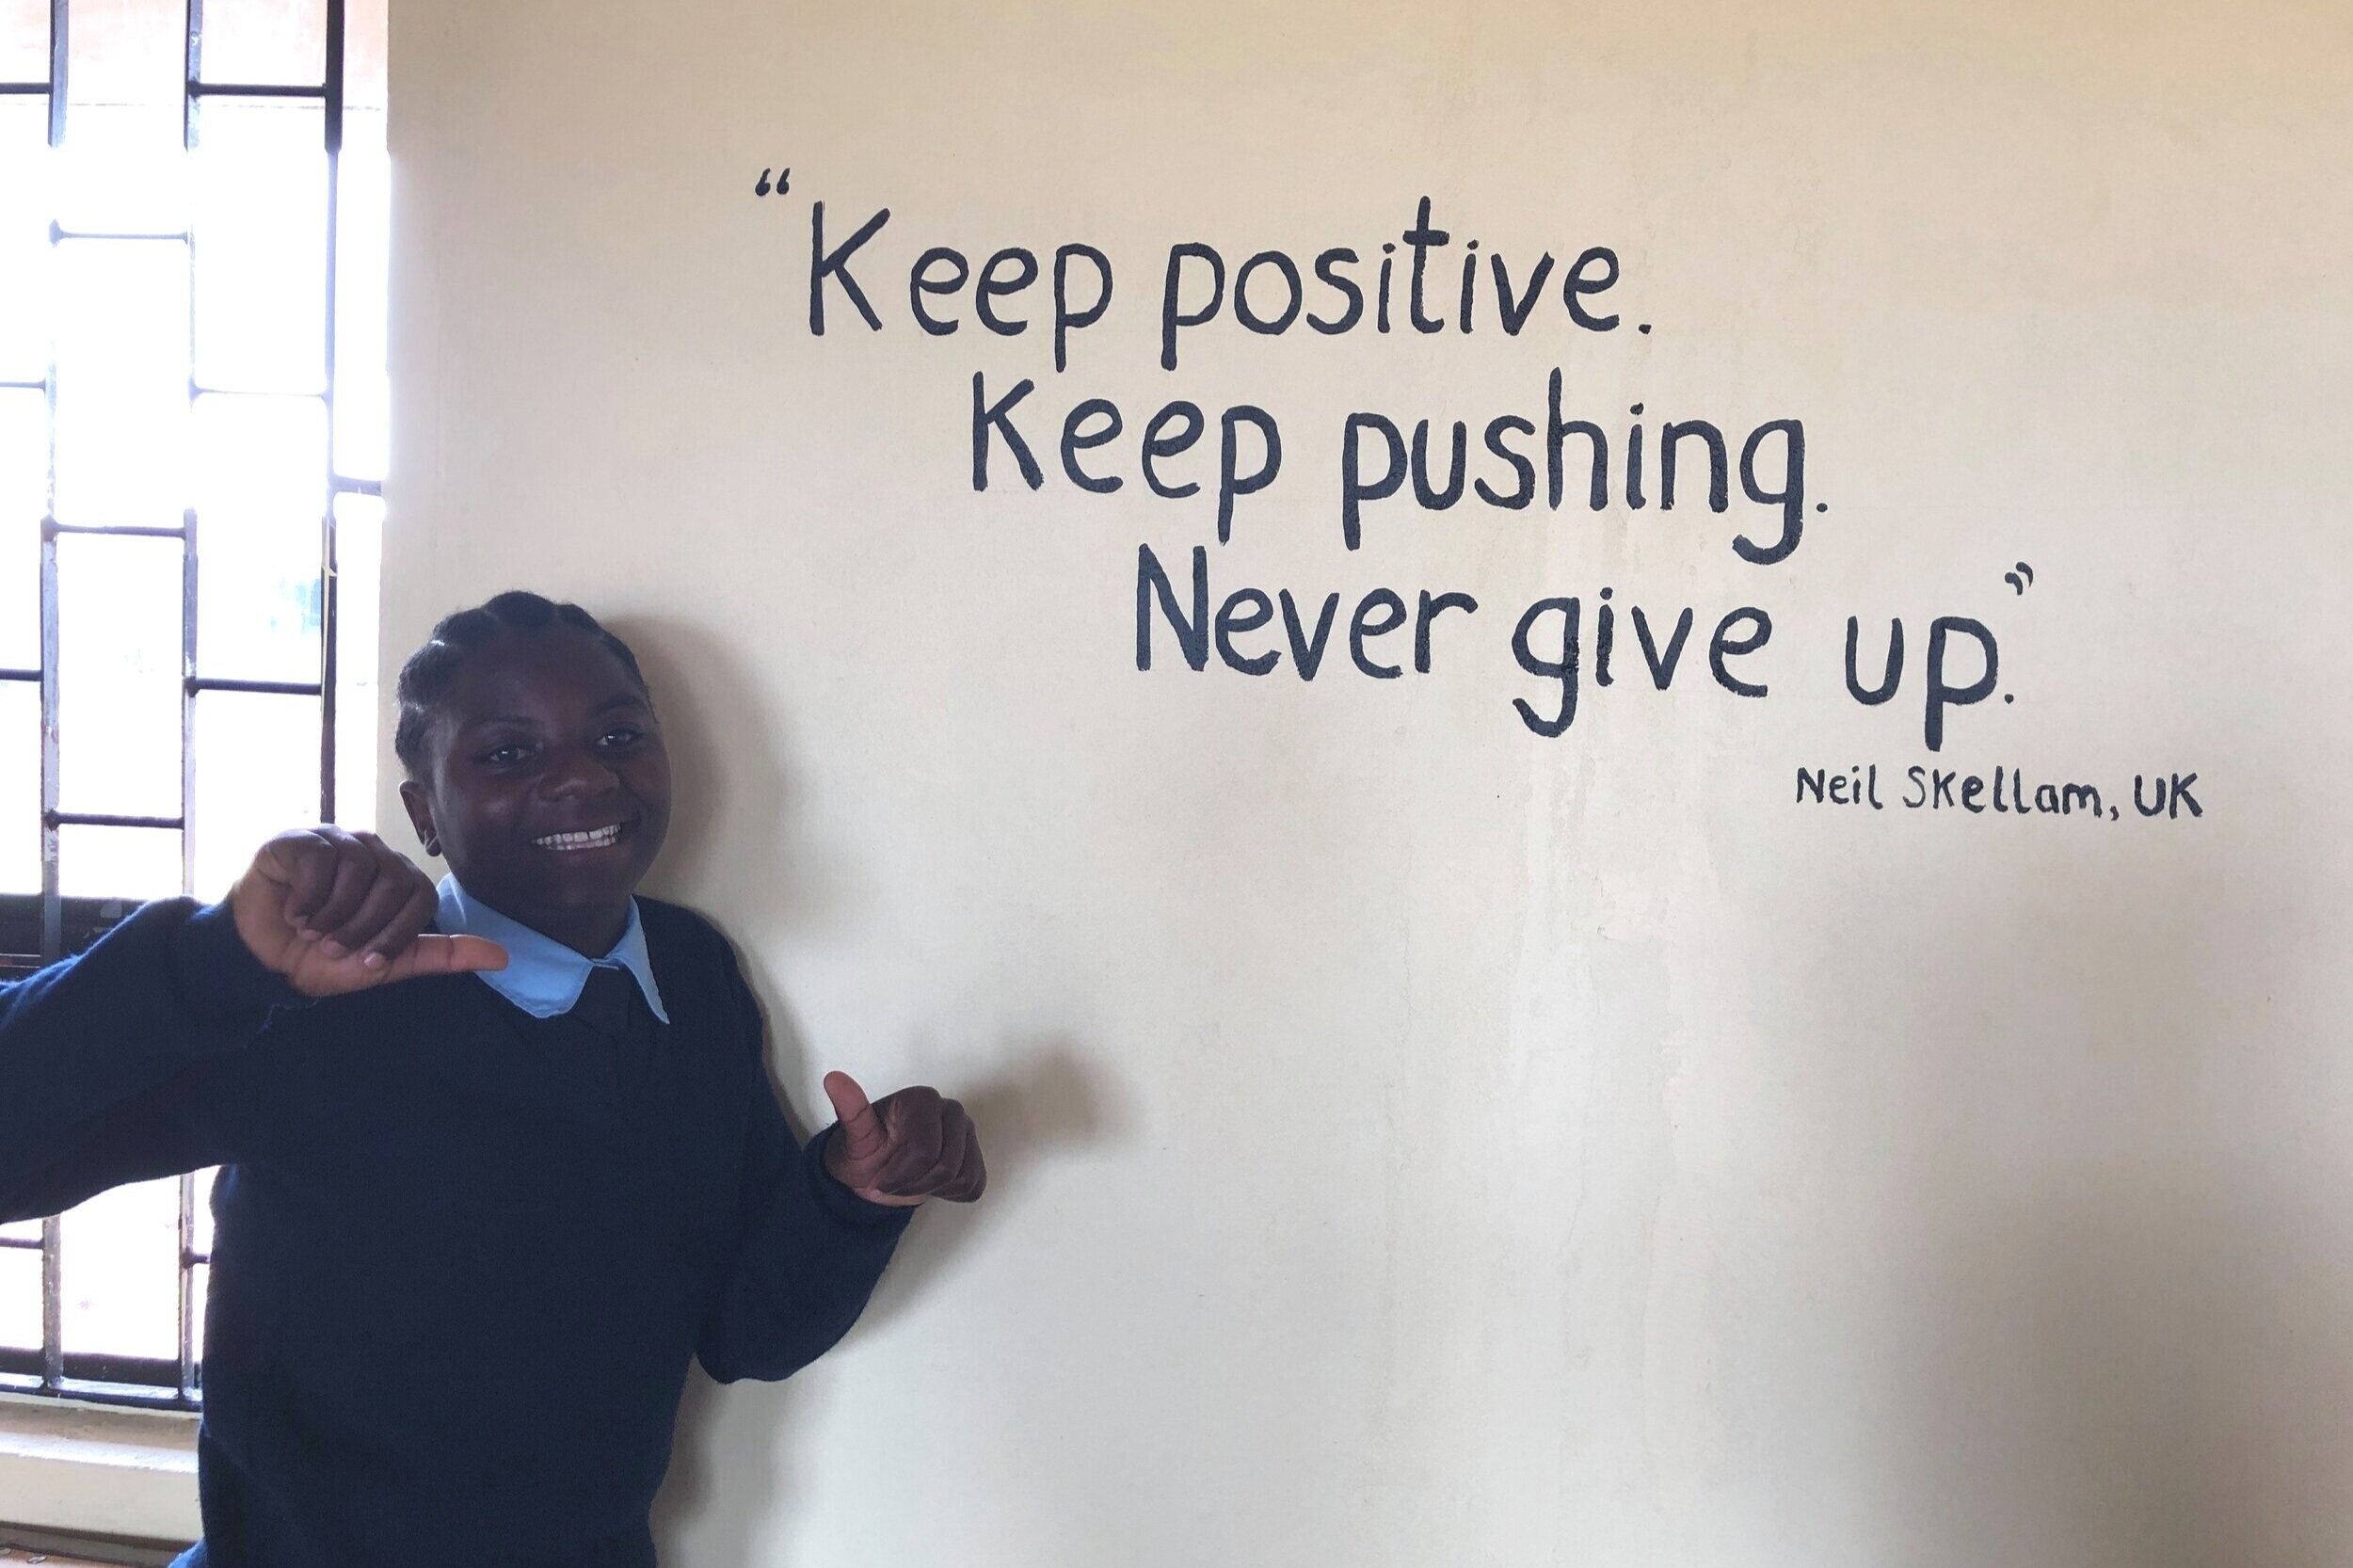 Sponsored runs for our school - We asked Neil for a quote to paint on the wall to motivate the students studying in the classroom he helped build.